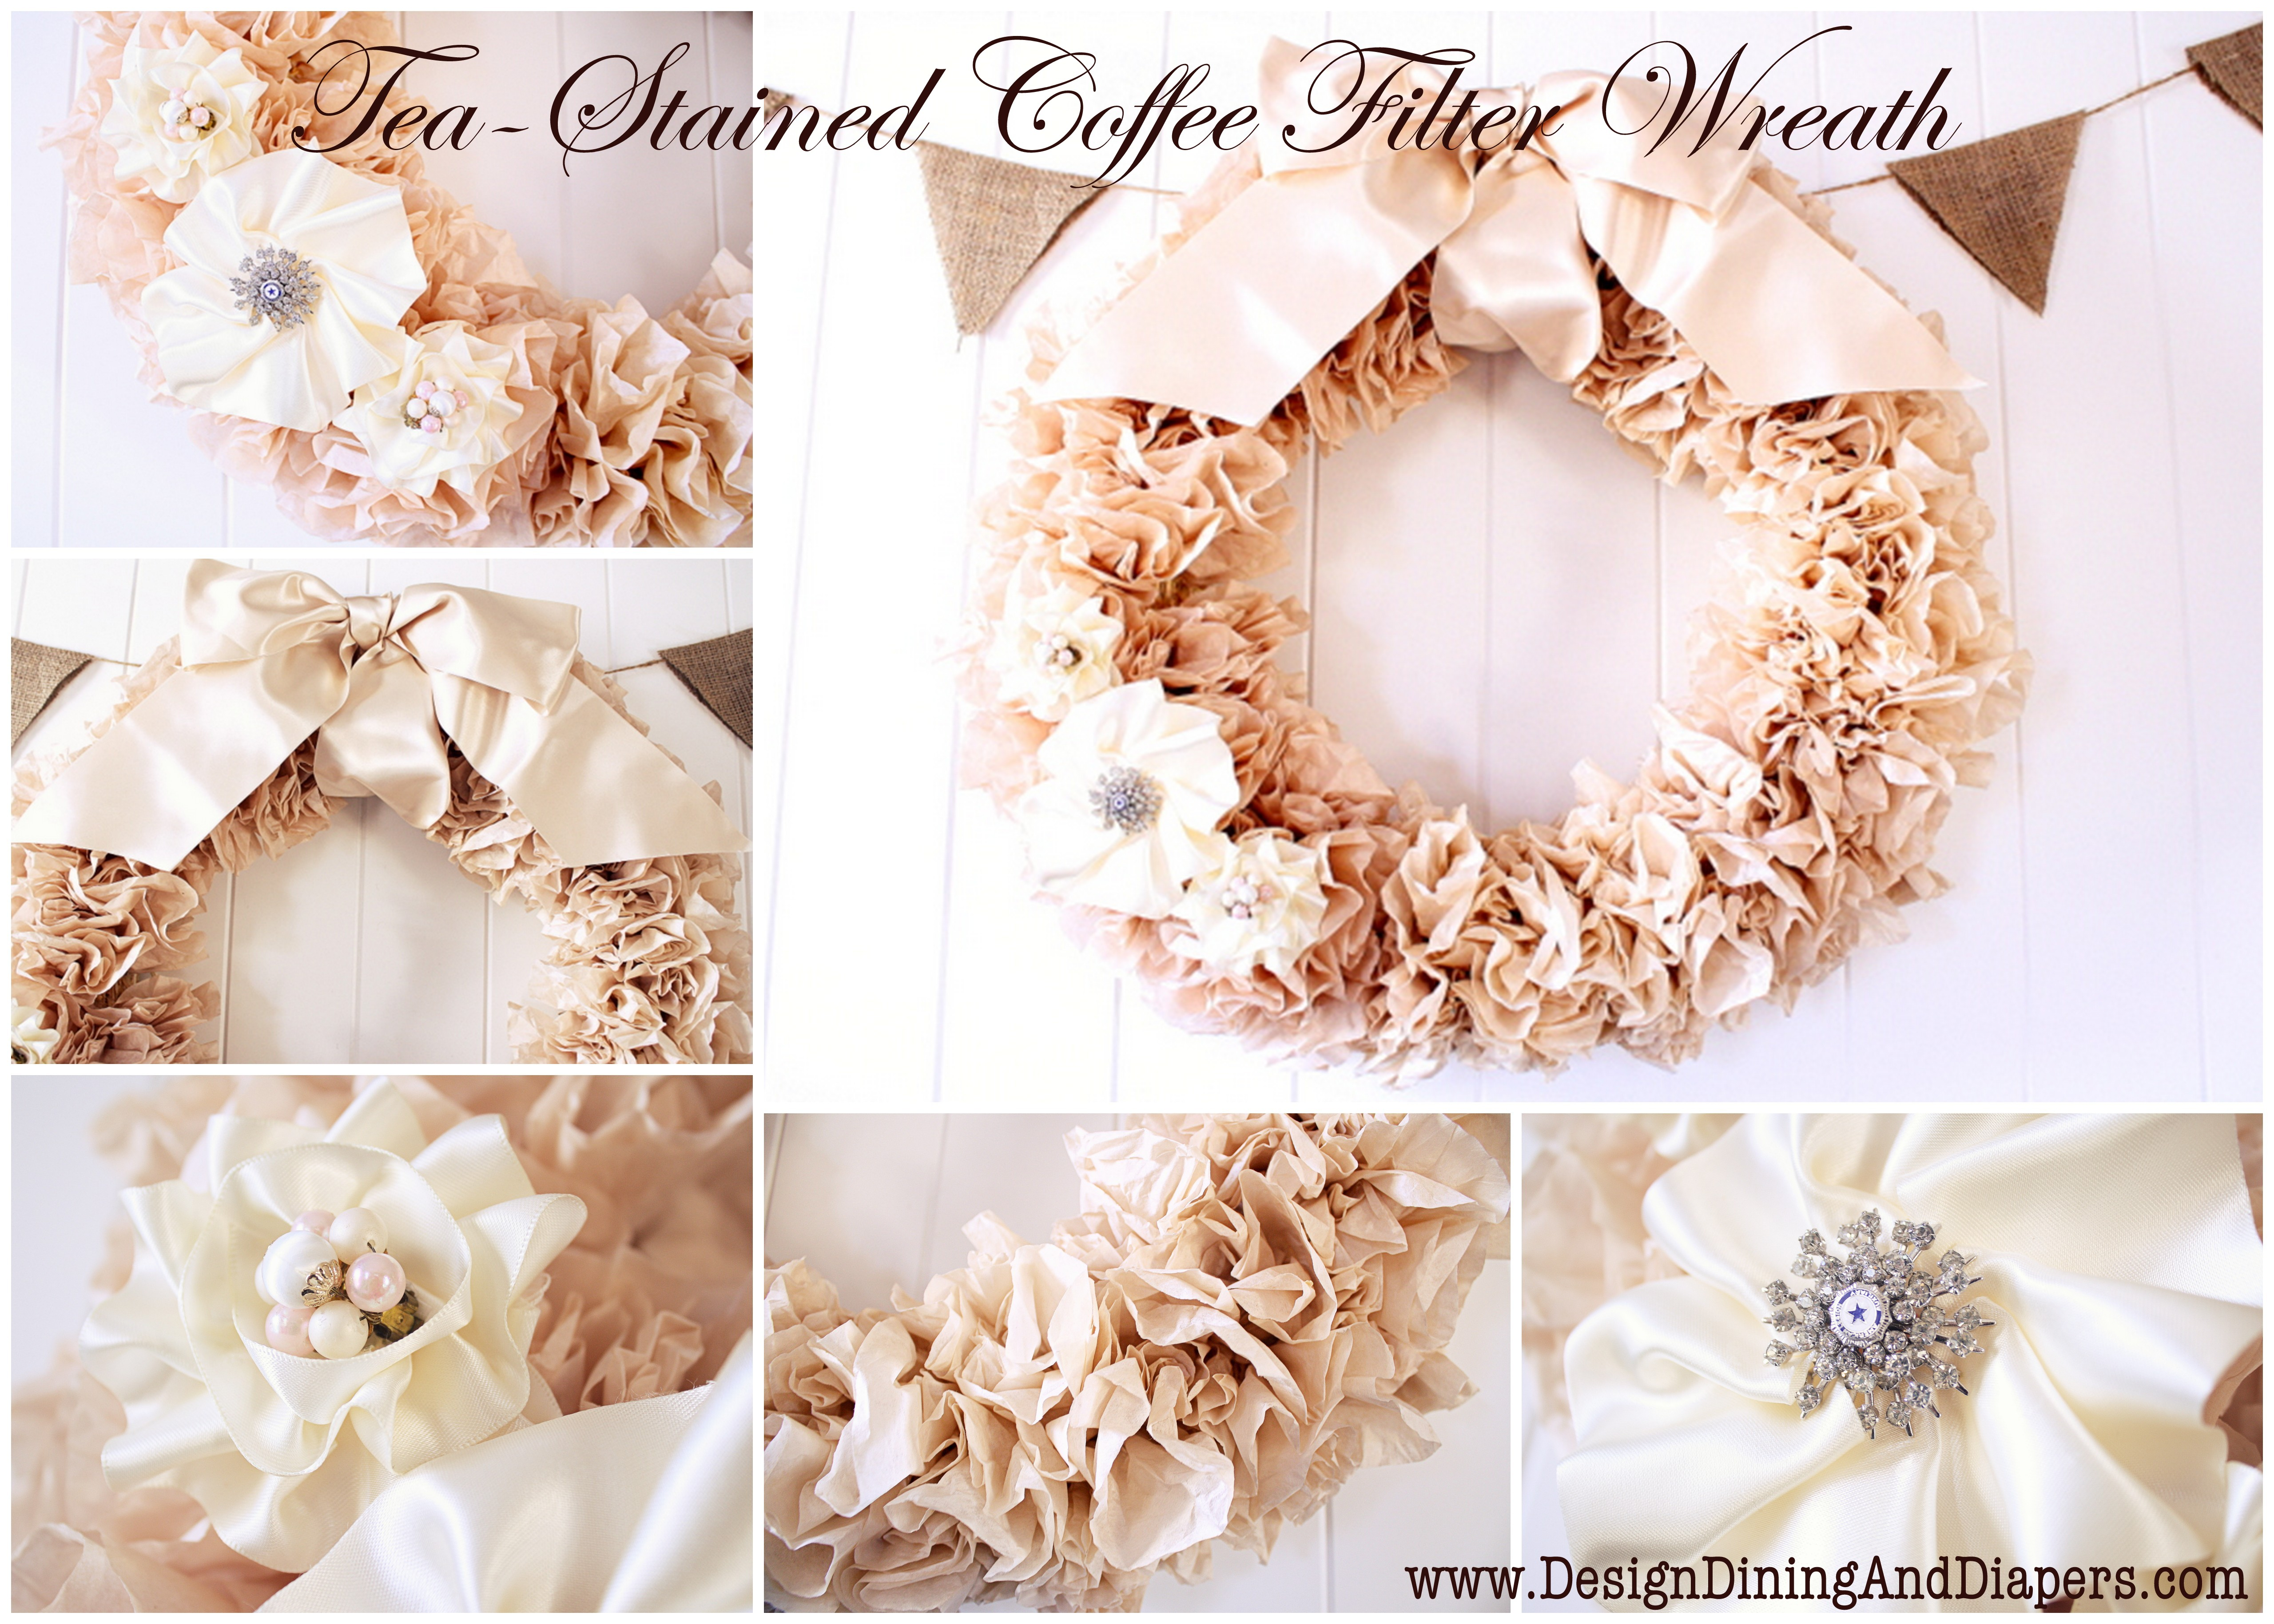 crafting on a budget diy tea stained coffee filter wreath. Black Bedroom Furniture Sets. Home Design Ideas